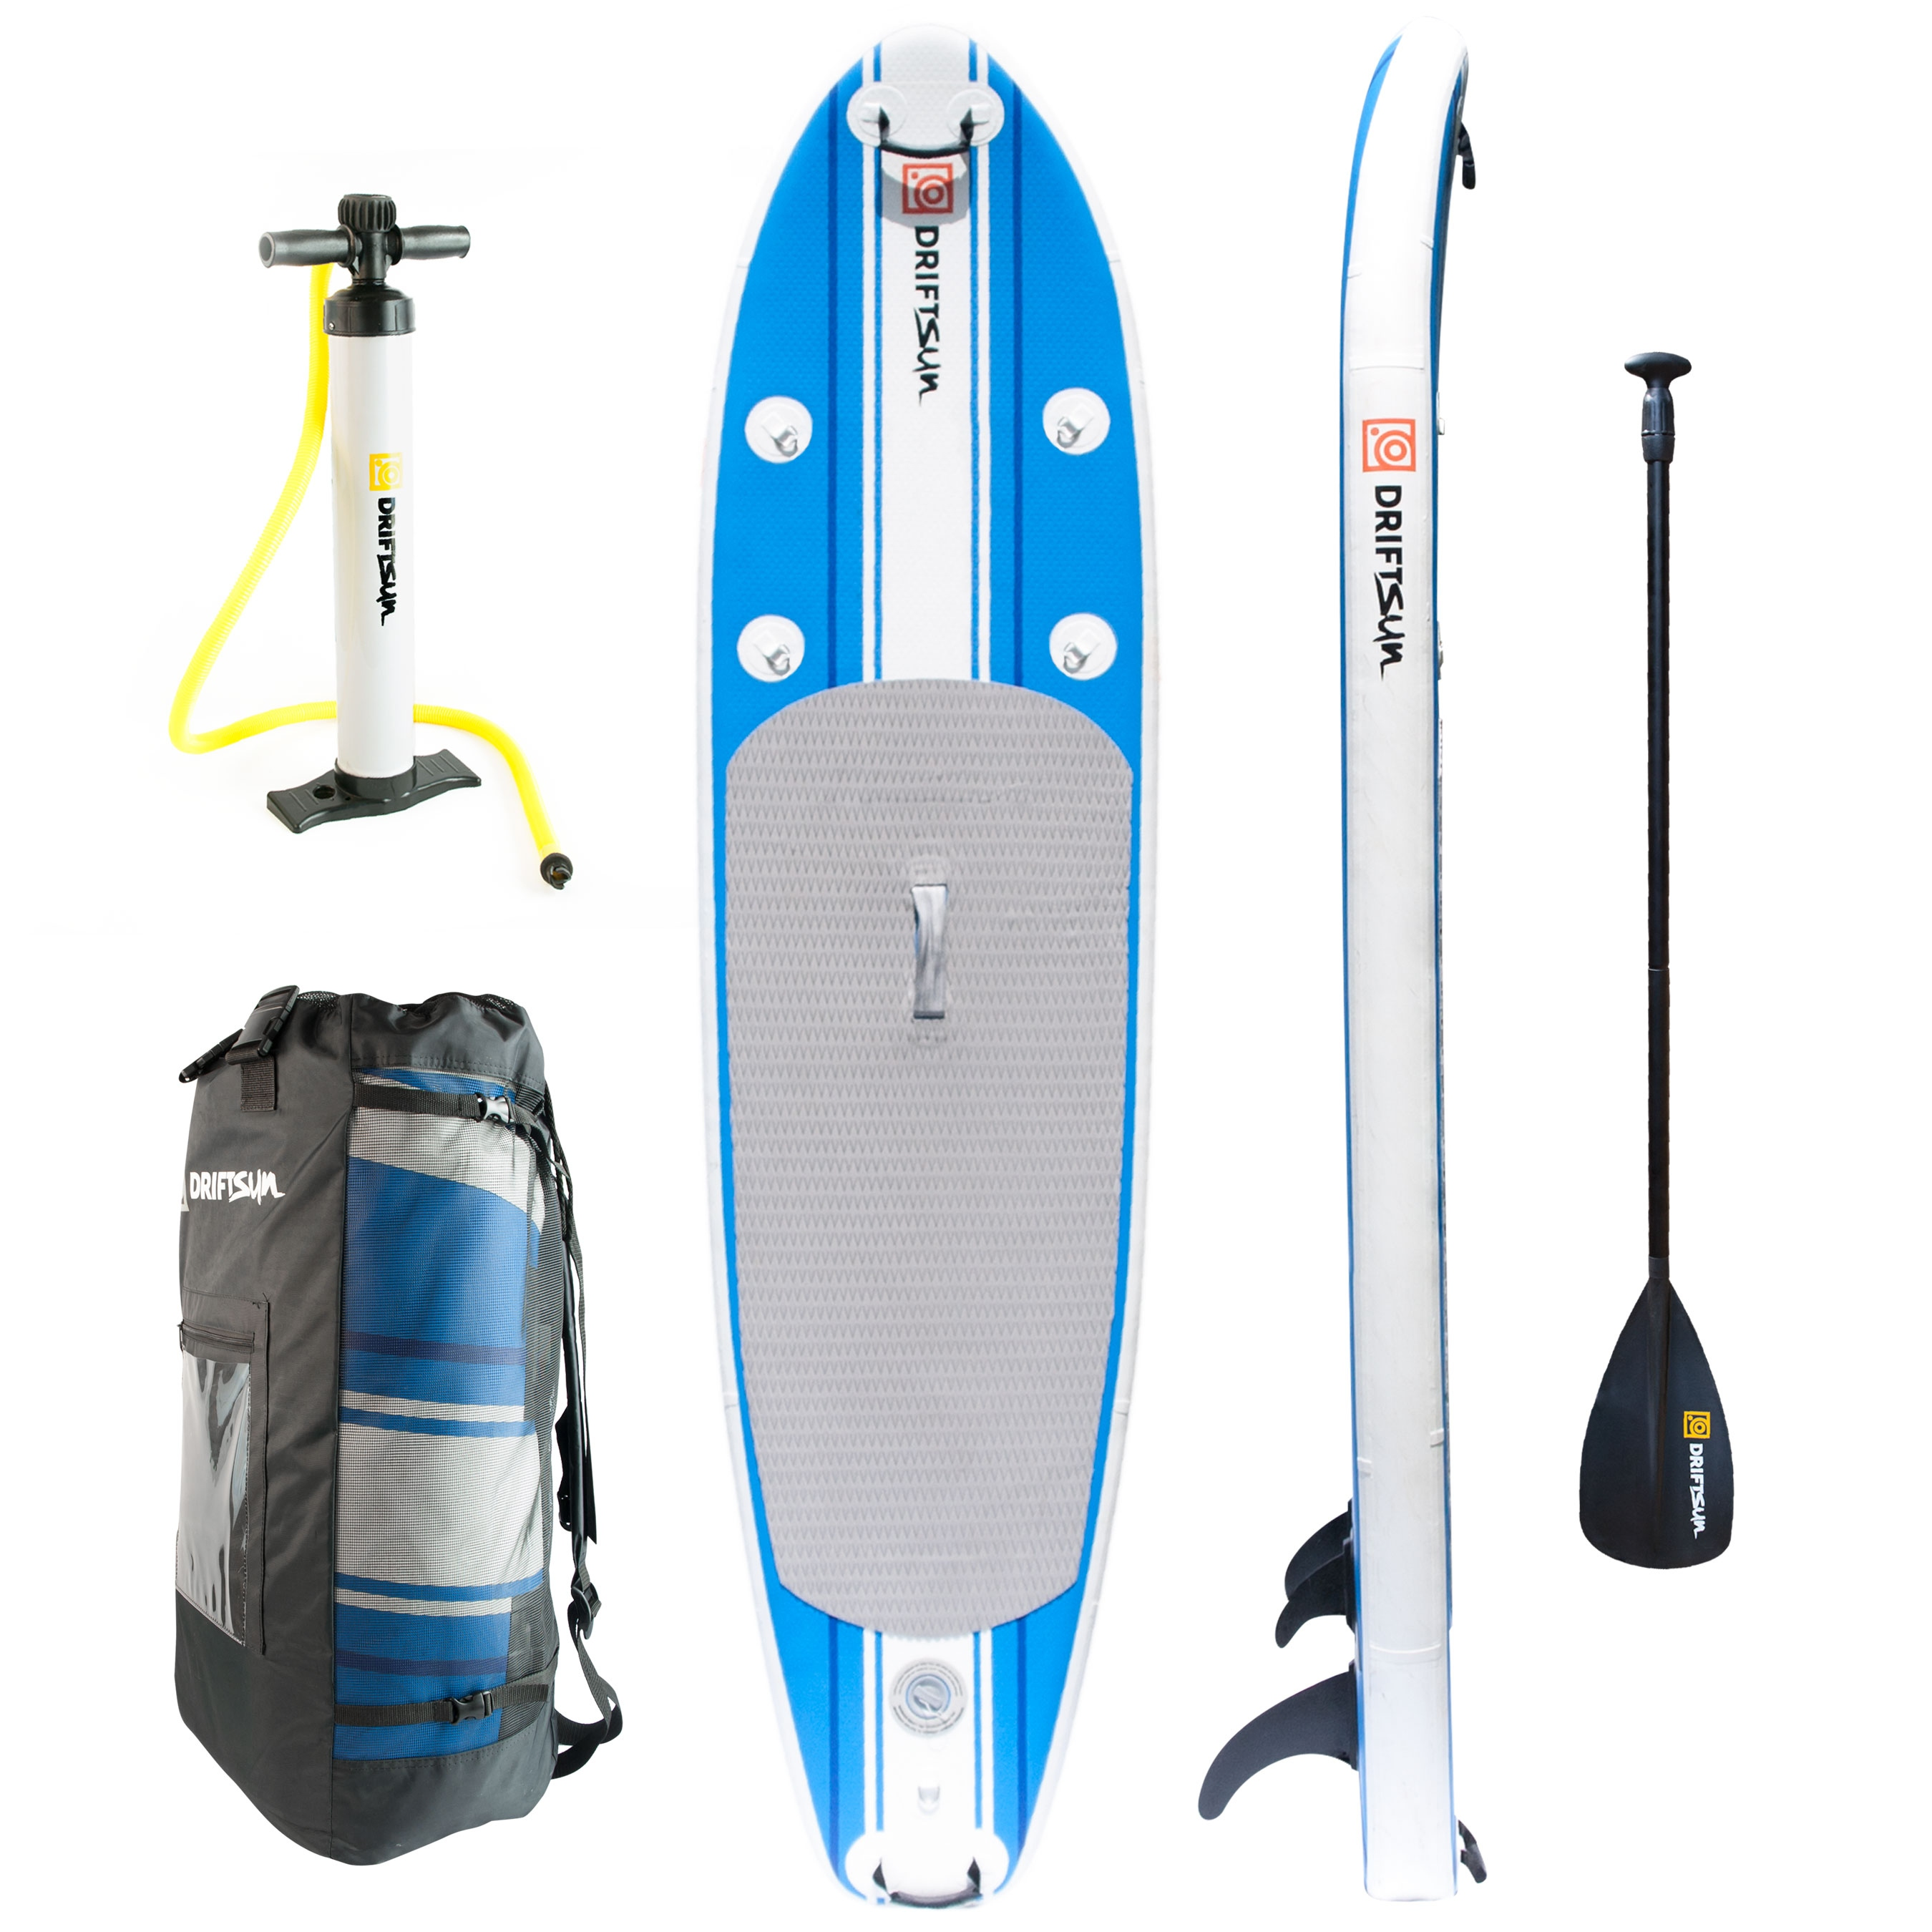 Driftsun SUP Inflatable 10' Stand Up Paddle Board Package. Everything Included: Board, Fins, Paddle, Pump and Carry Backpack